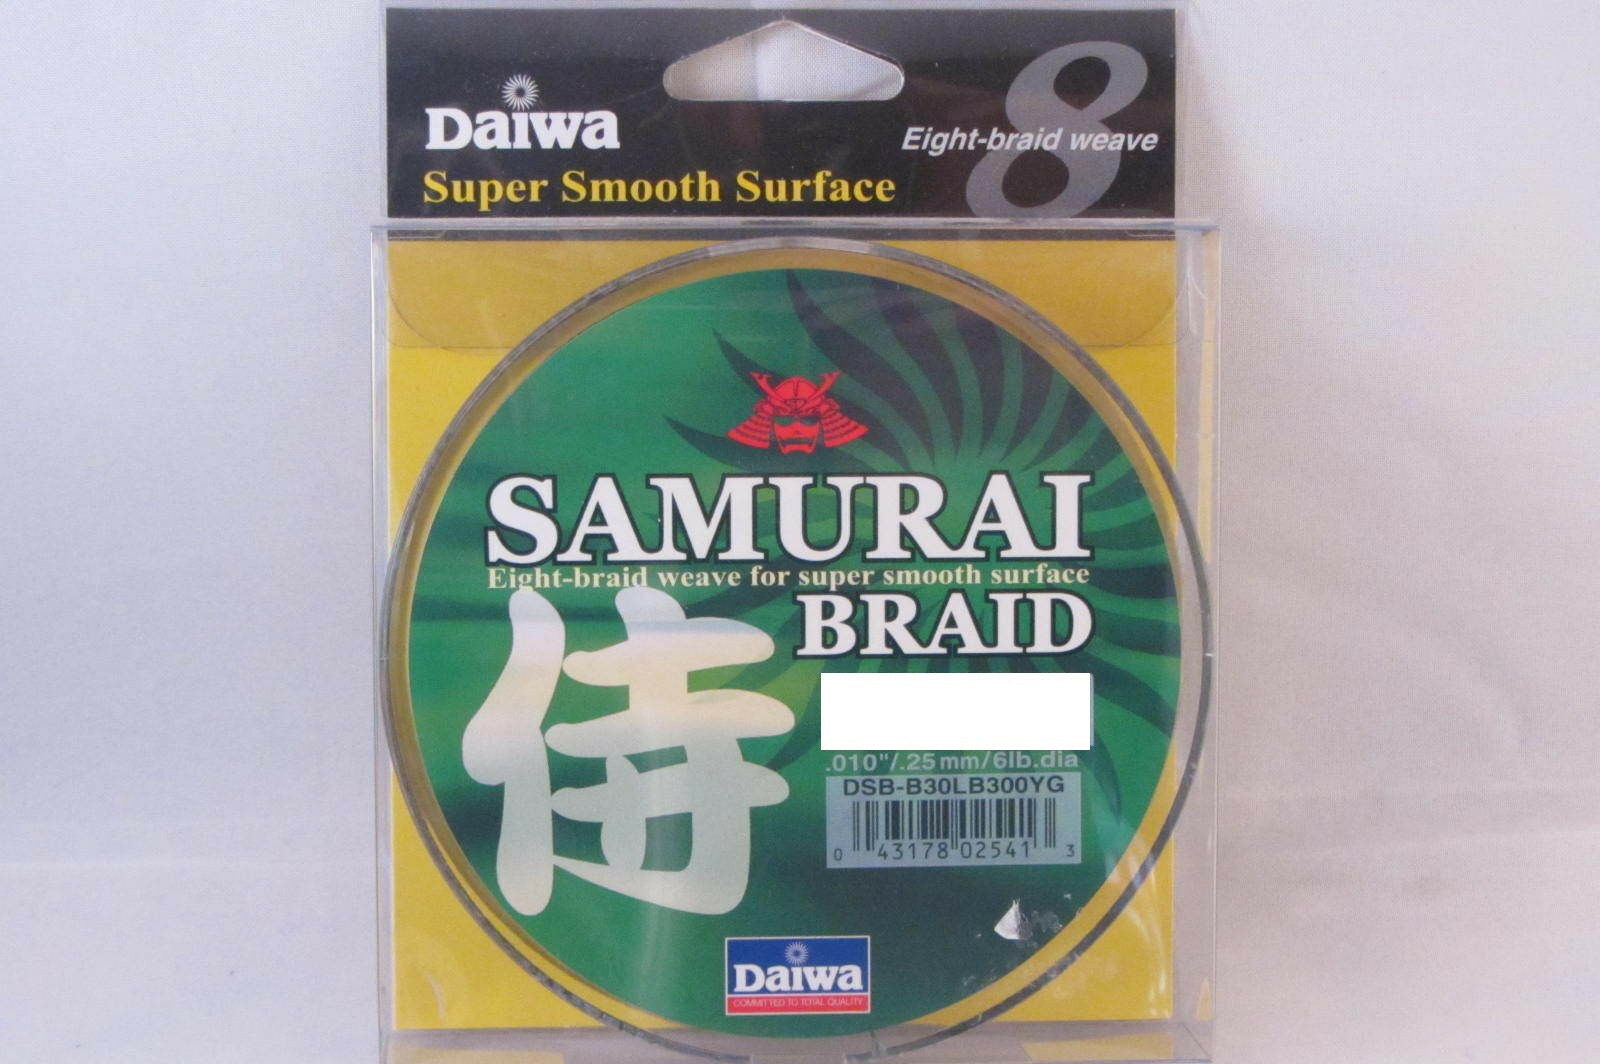 NEW DAIWA SAMURAI BRAID GREEN 70LB 300YD DSB-B70LB300YG